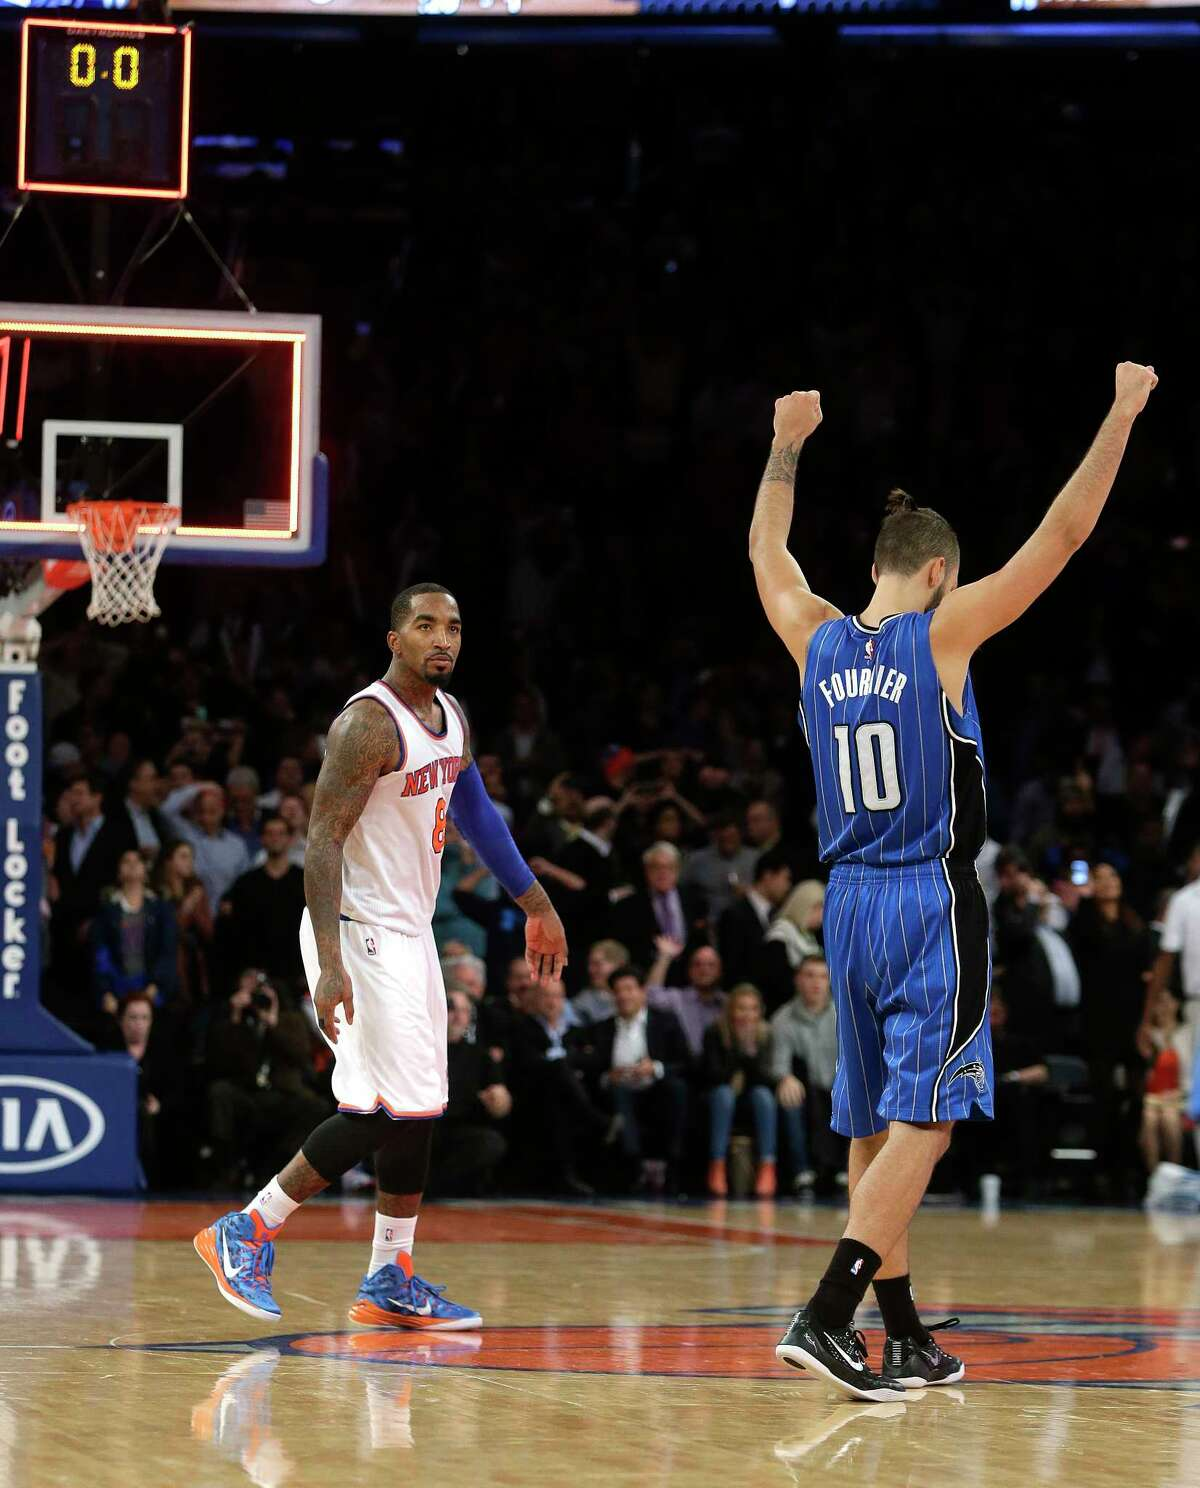 Evan Fournier and the Orlando Magic defeated the Knicks 97-95 on Wednesday in New York.